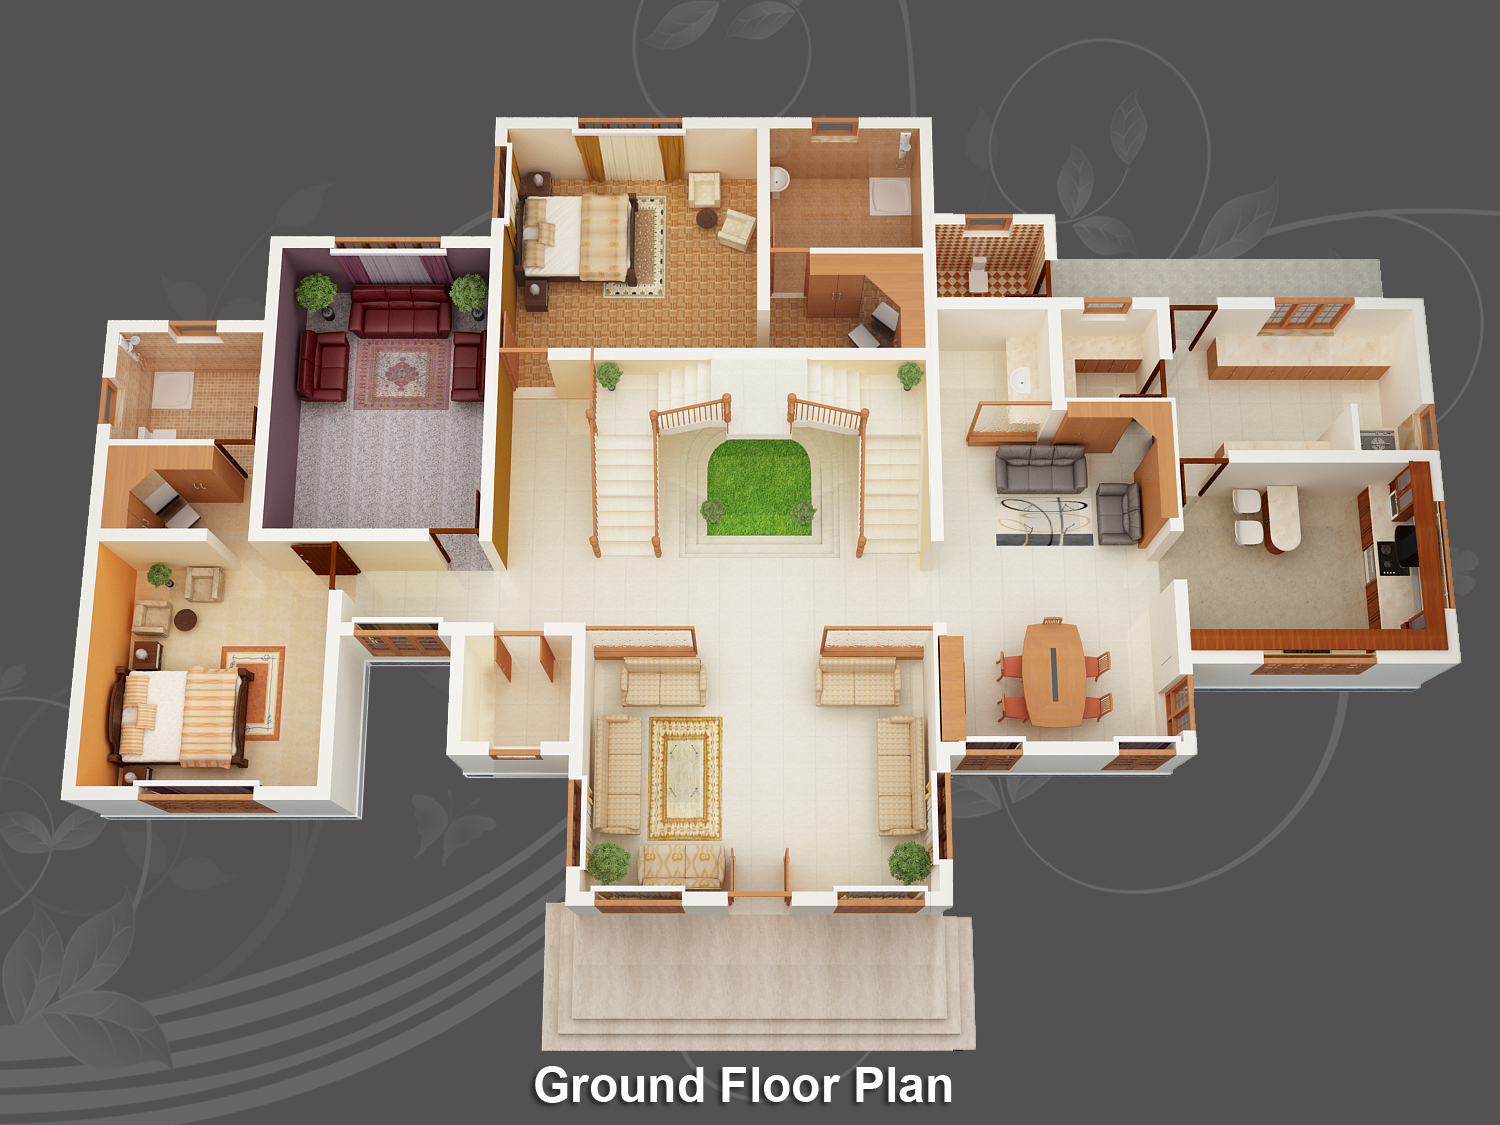 Evens construction pvt ltd 3d house plan 20 05 2011 for House design plan 3d